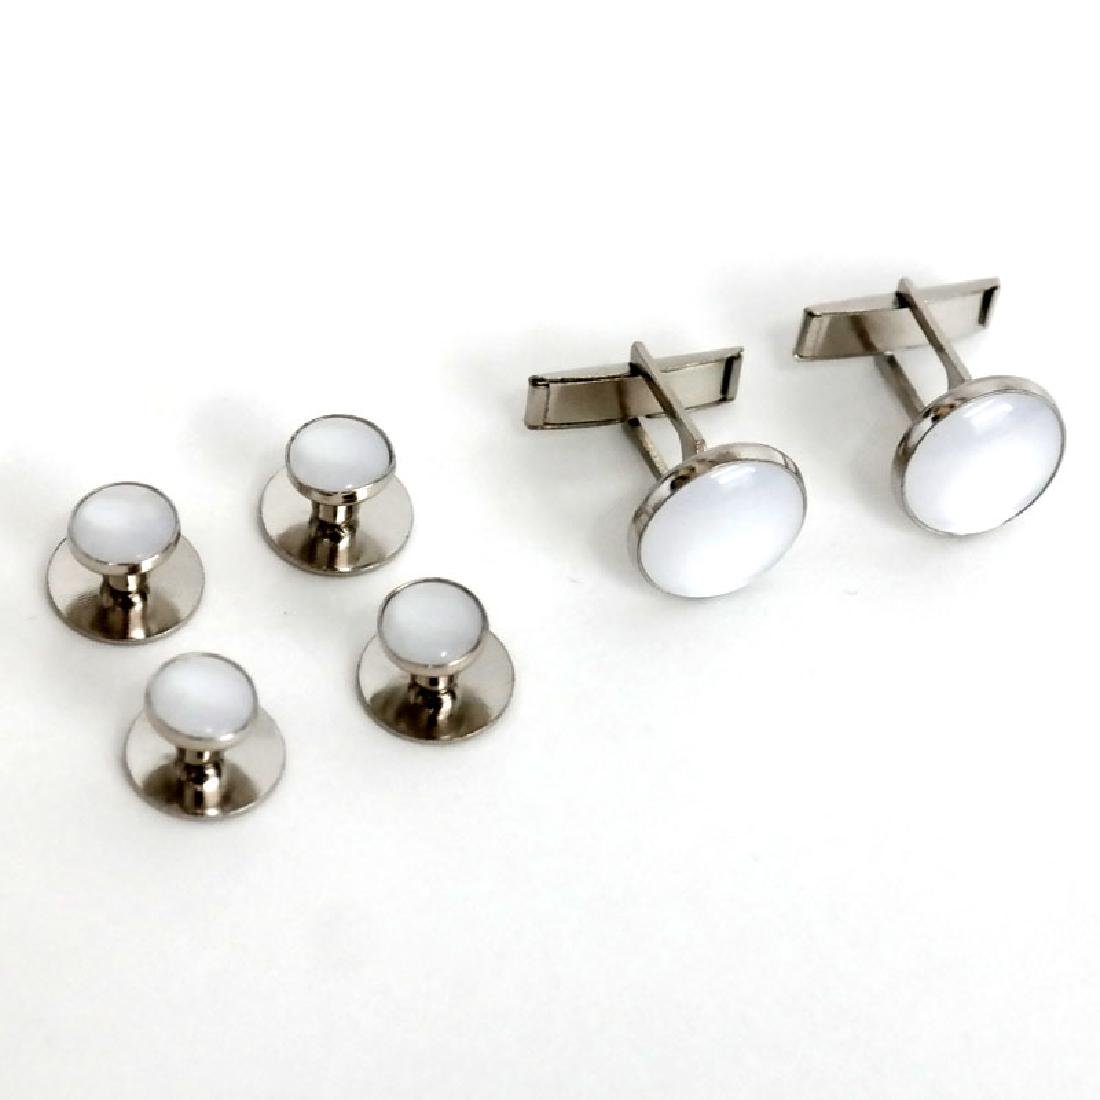 Silver tone SET - pair of cufflinks and 4 buttons with